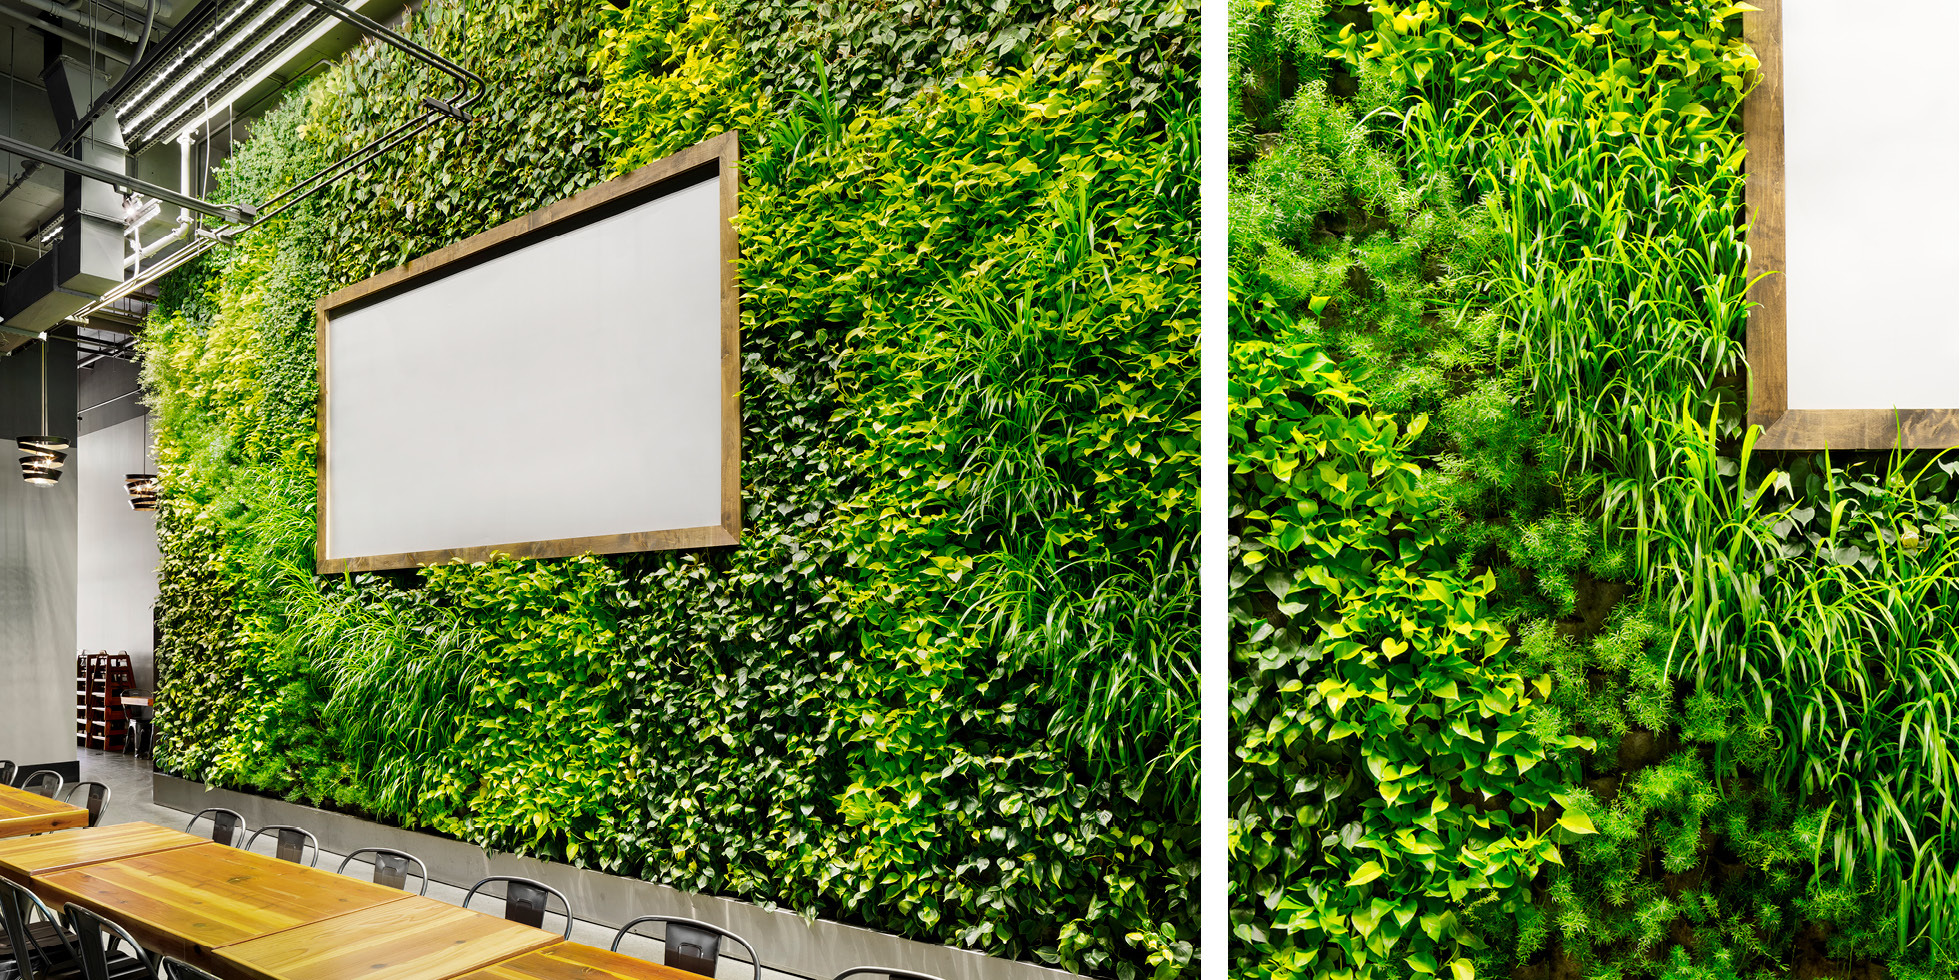 Steins Beer Garden Living Wall by Habitat Horticulture - View 3